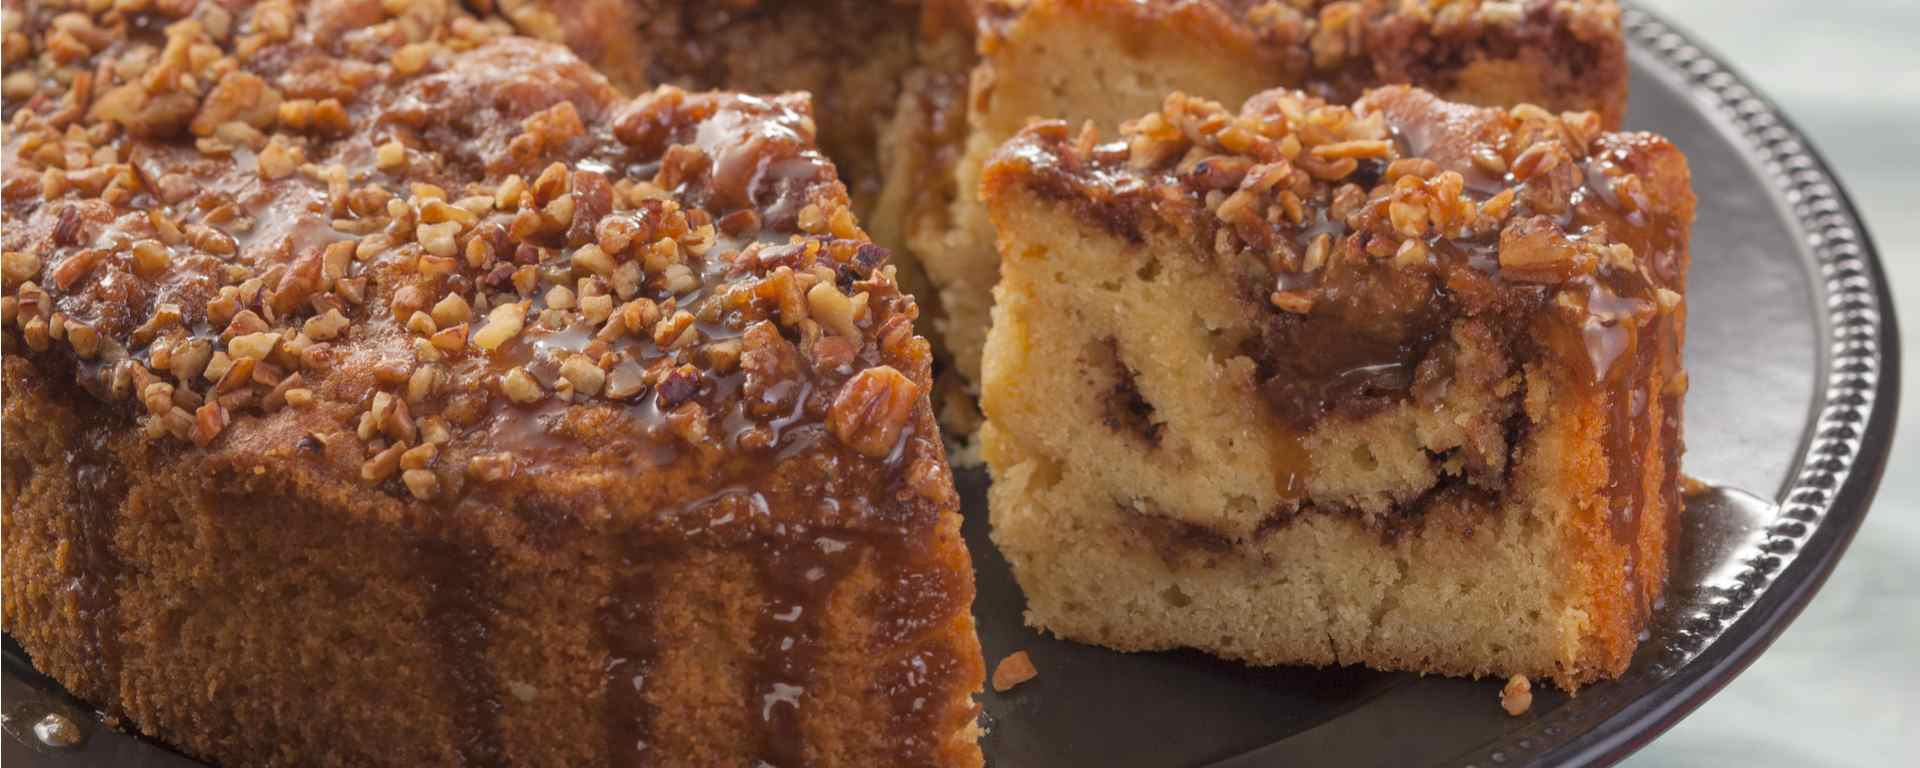 Photo for - Classic Coffee Cake with Pecans and Cinnamon